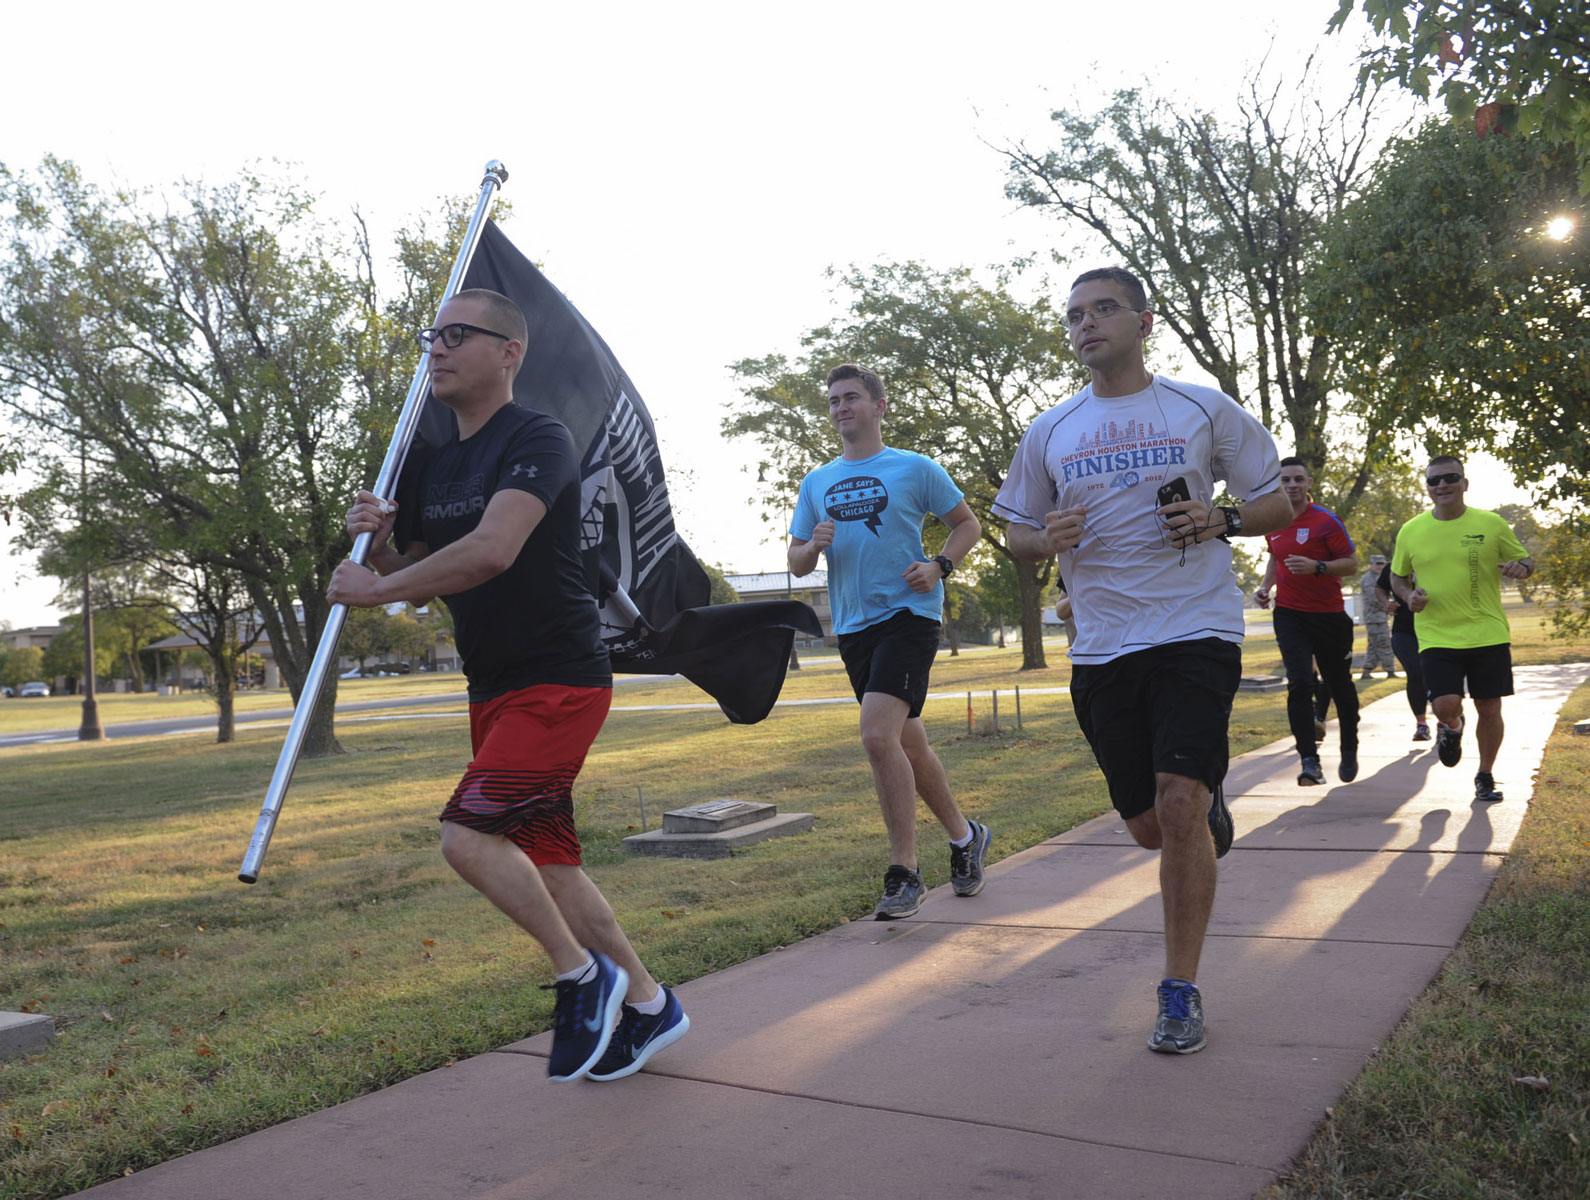 Team McConnell Airmen run with the POW-MIA flag as part of a run/walk relay during POW/MIA week at McConnell Air Force Base, Kansas. In 1979, congress passed a resolution declaring the third Friday in September as POW/MIA Recognition Day.